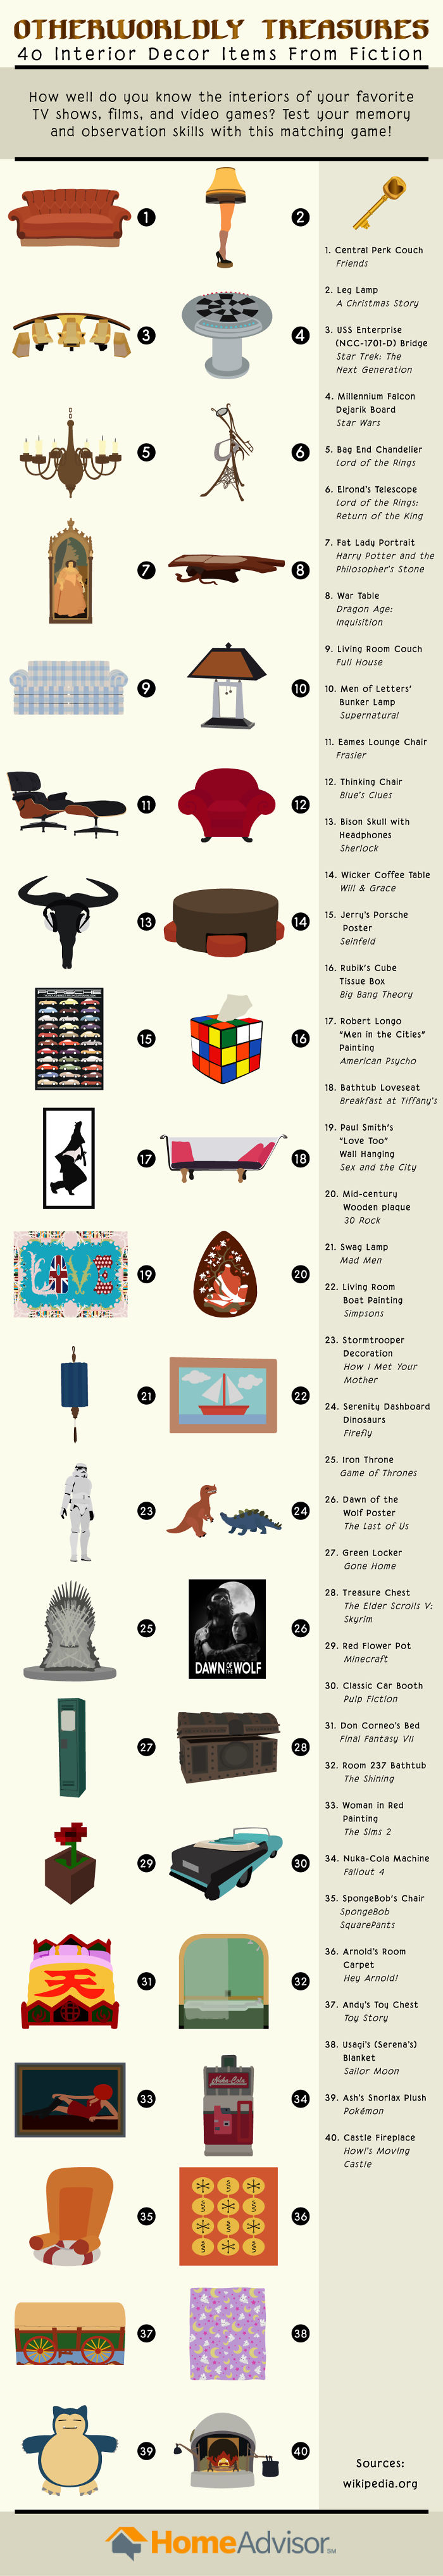 Otherworldly Treasures: 40 Interior Decor Items From Fiction